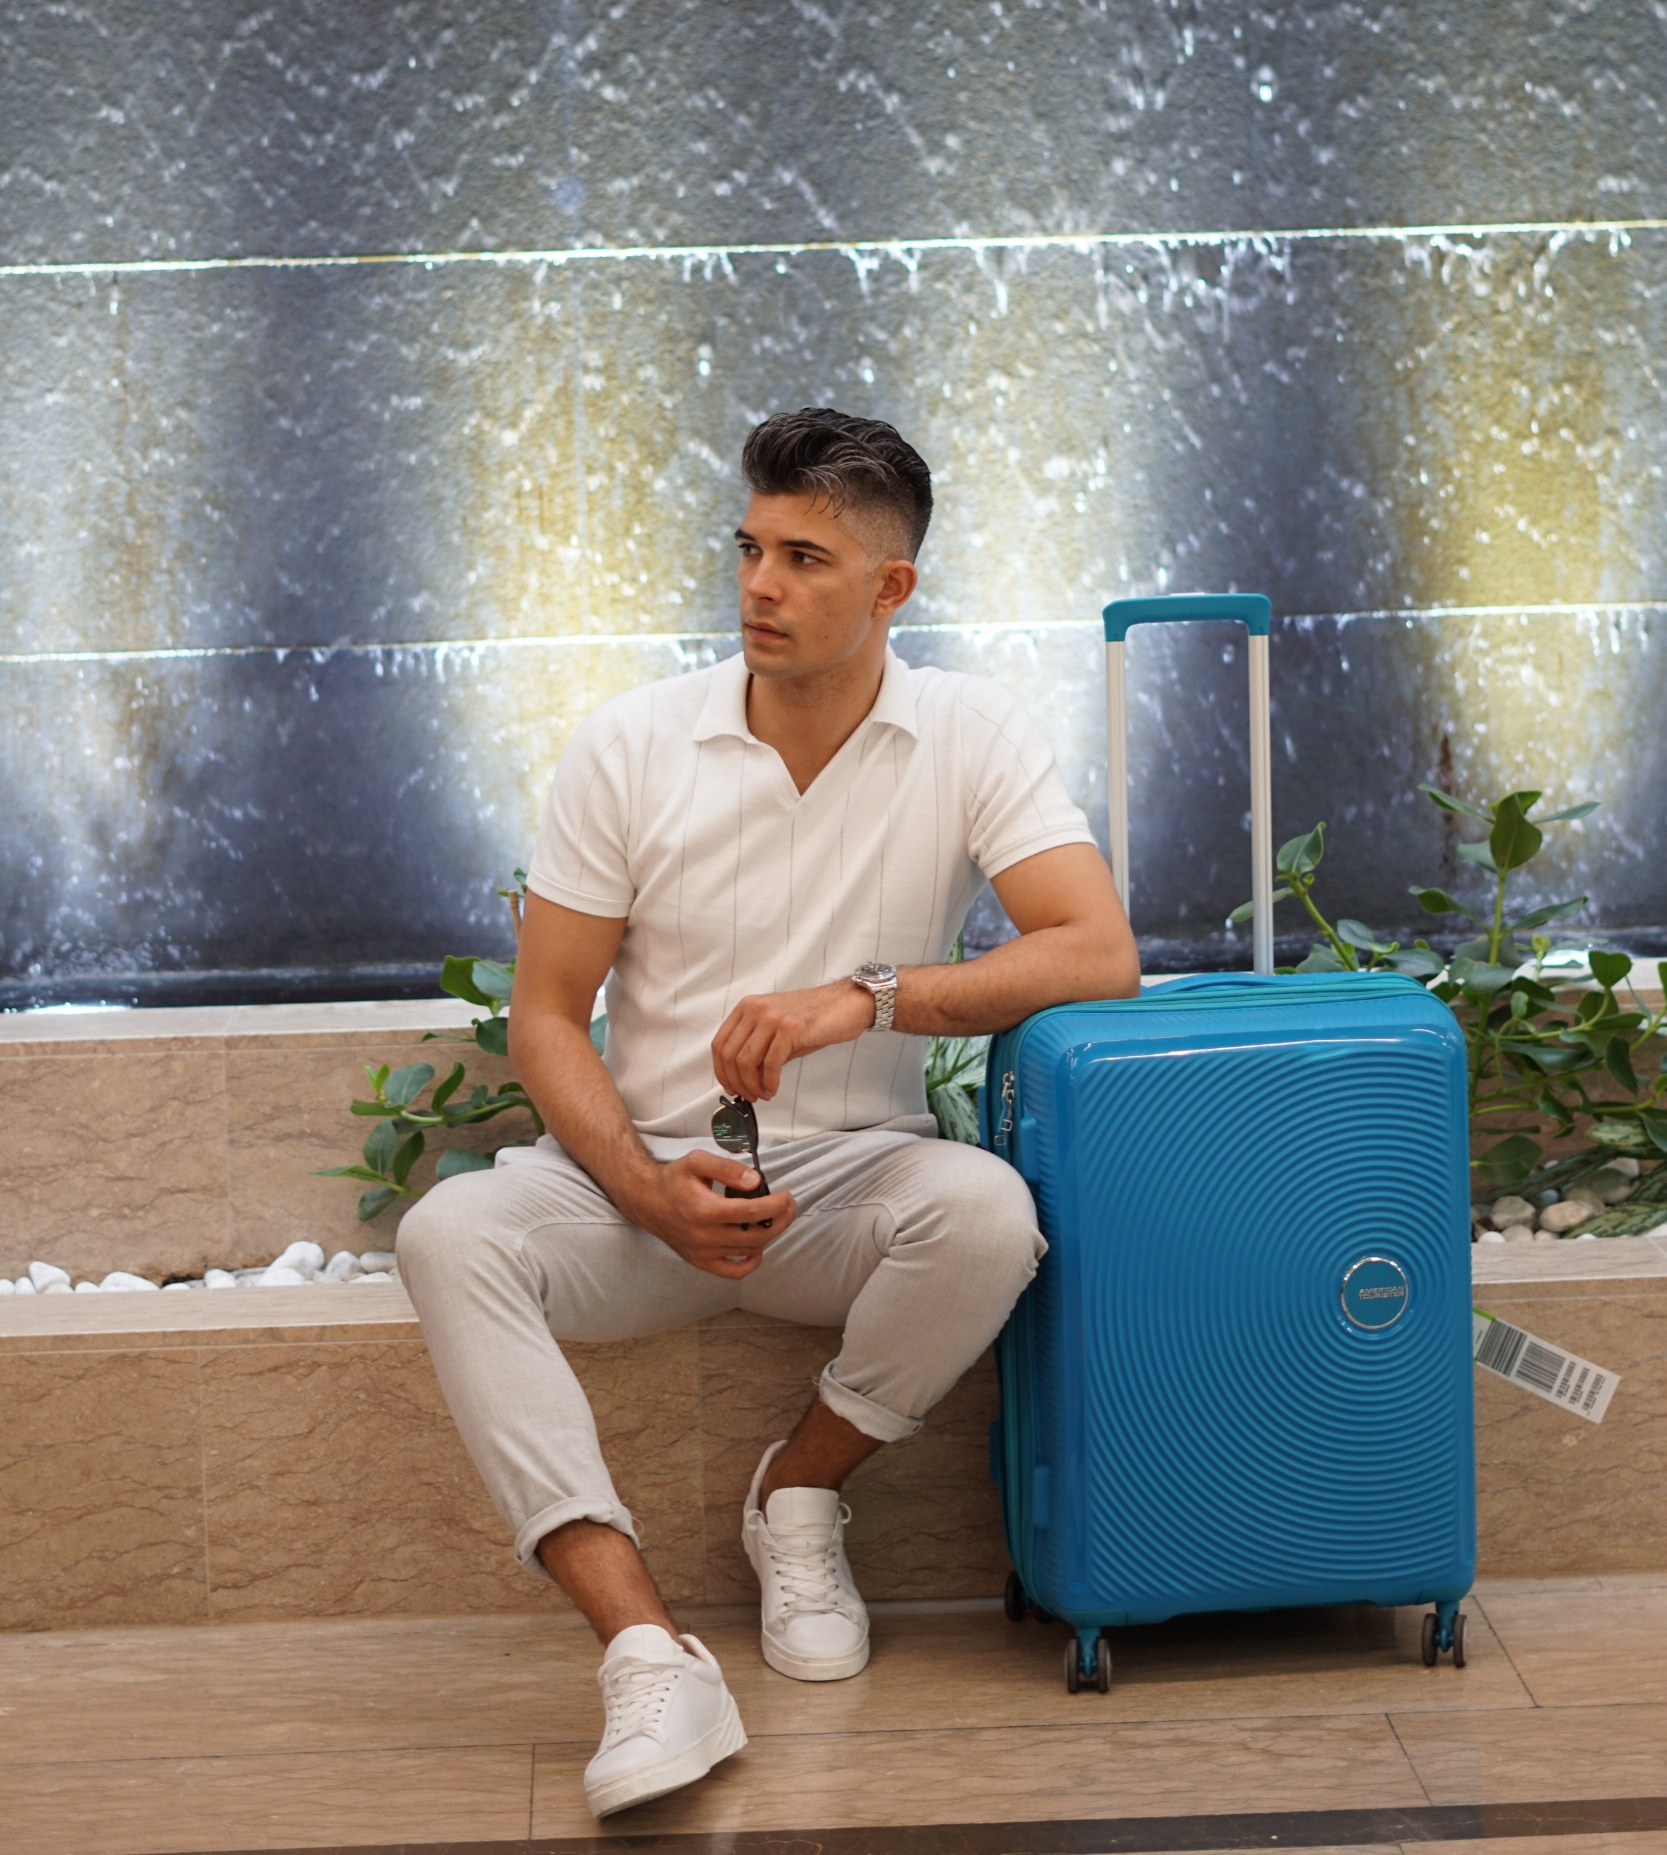 Here is a photo of him looking super cool with the American Tourister luggage. How does he always look so cool?